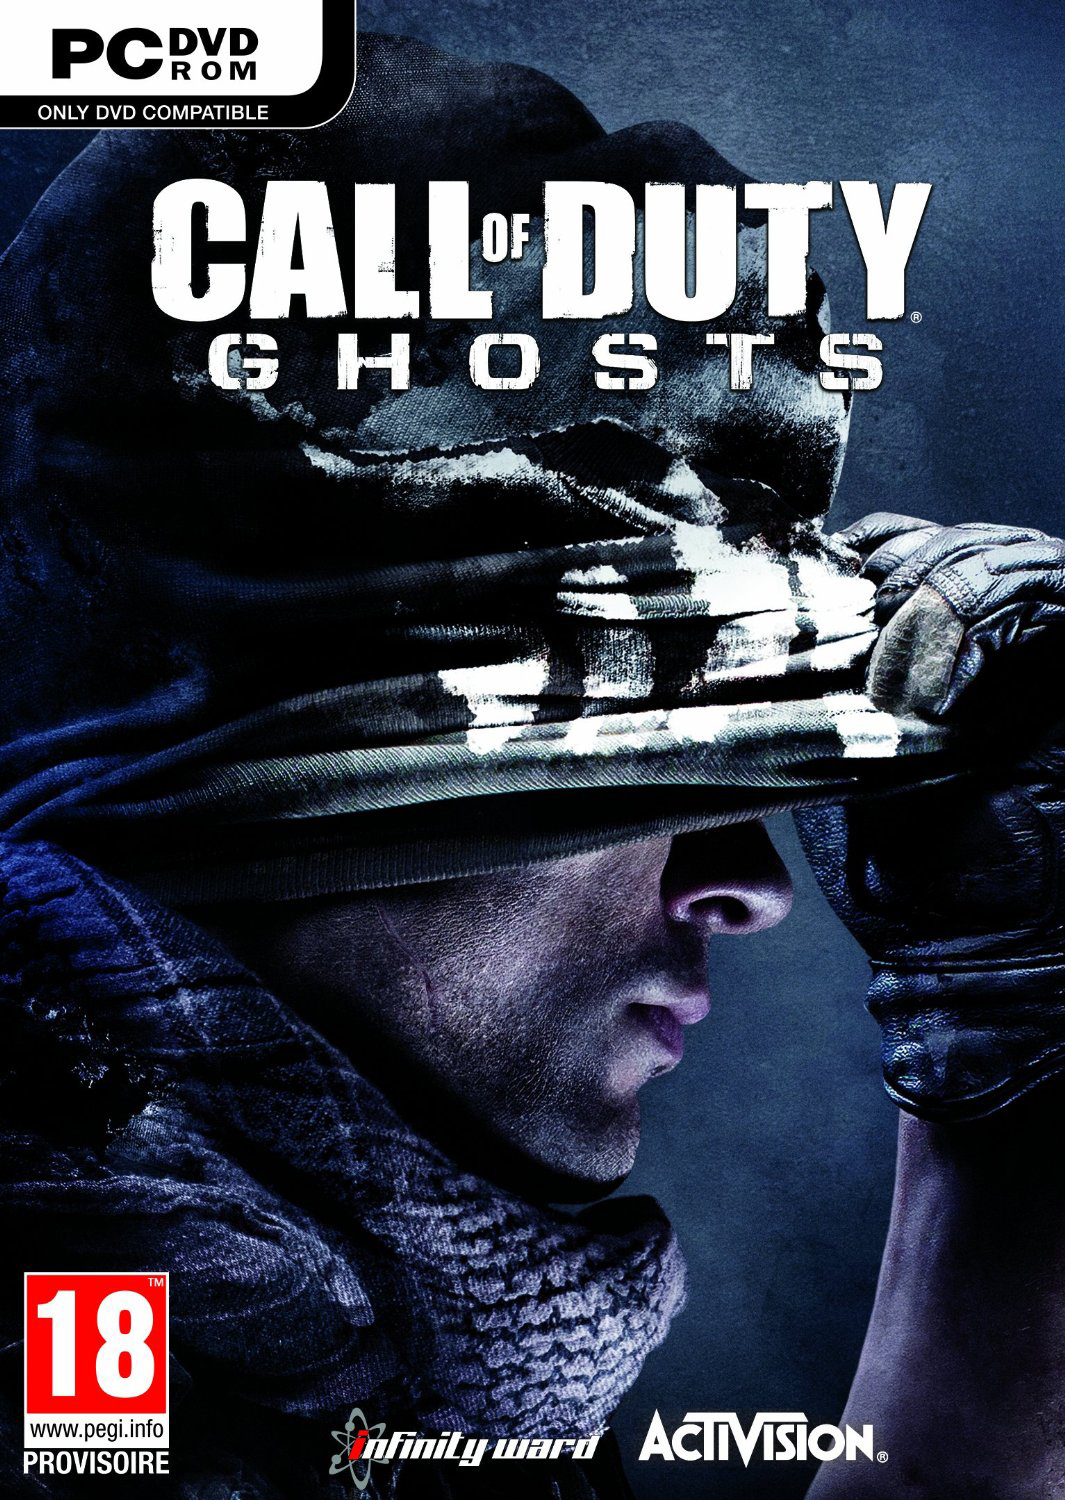 http://image.jeuxvideo.com/images/jaquettes/00047823/jaquette-call-of-duty-ghosts-pc-cover-avant-g-1371021120.jpg